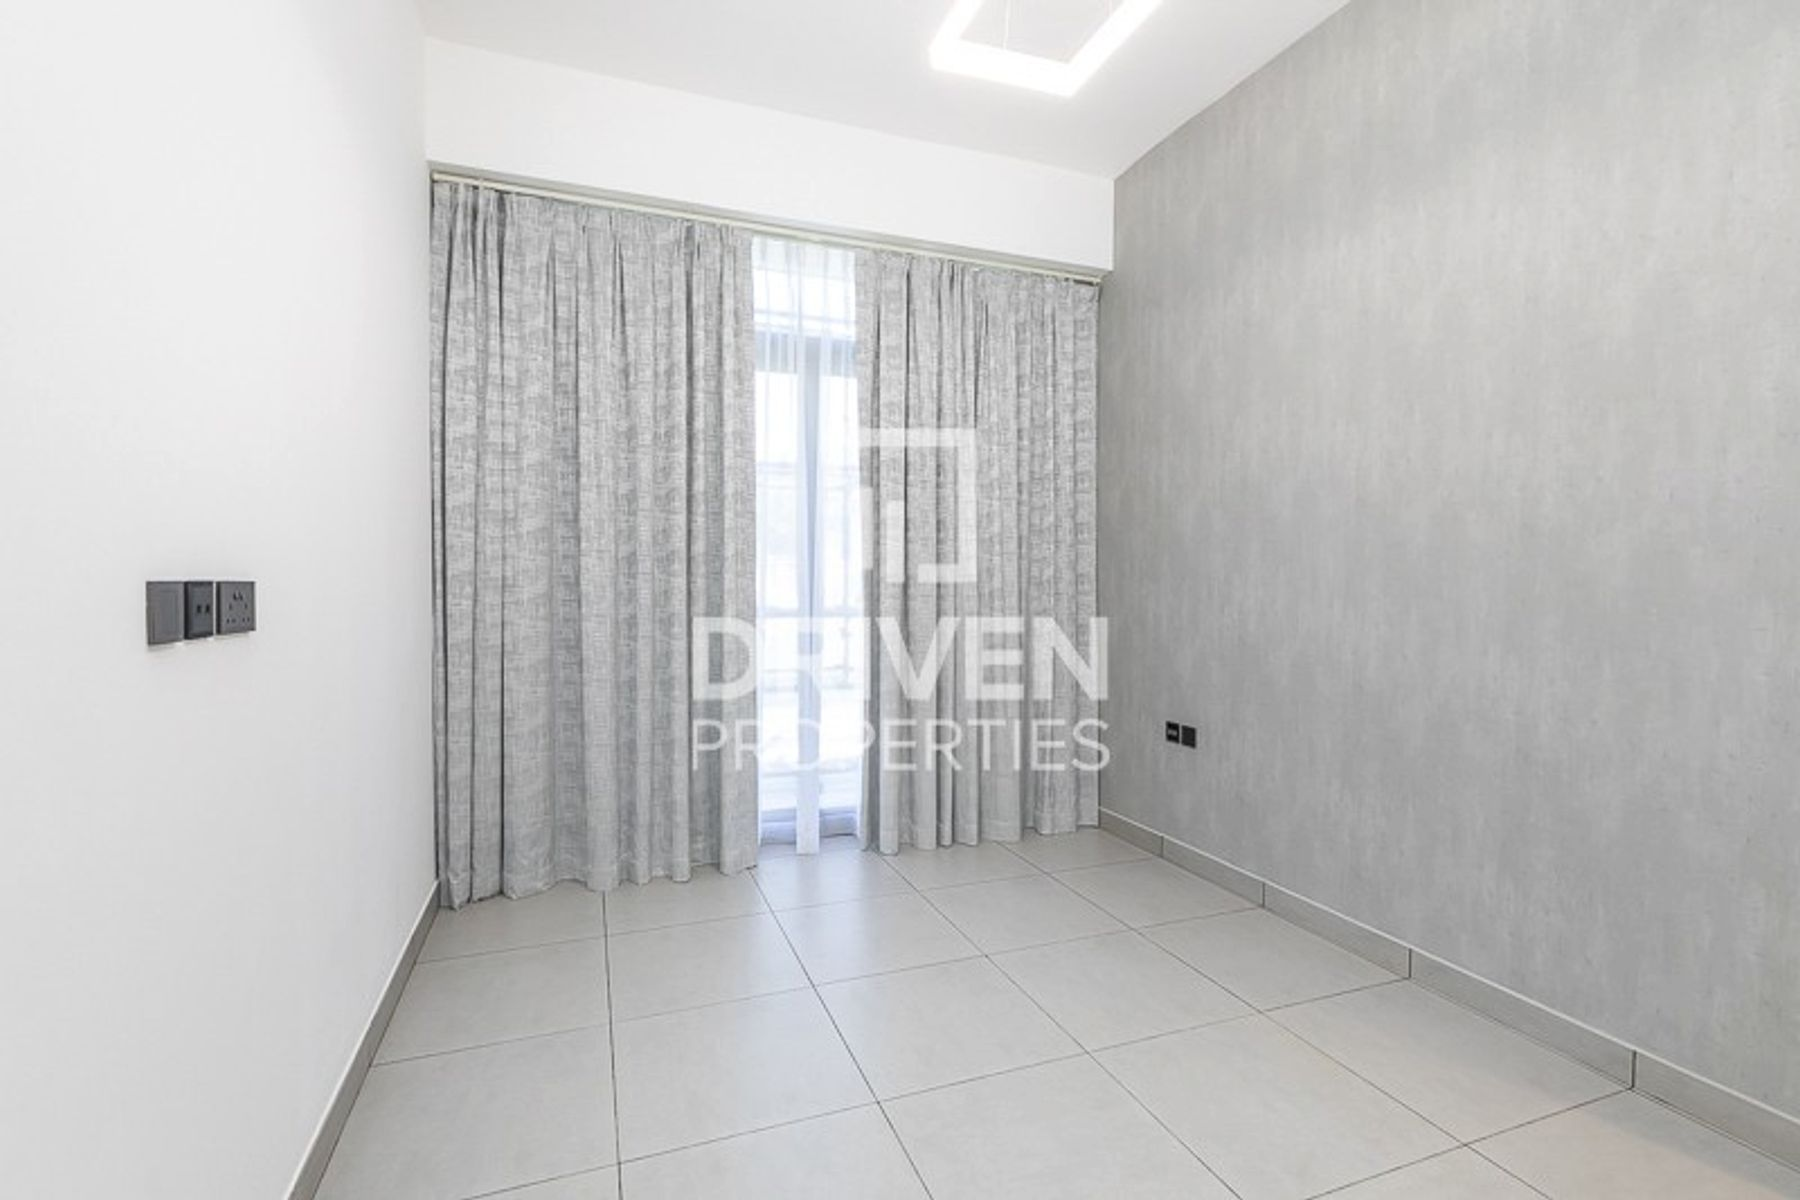 Apartment for Sale in Rigel, Jumeirah Village Circle